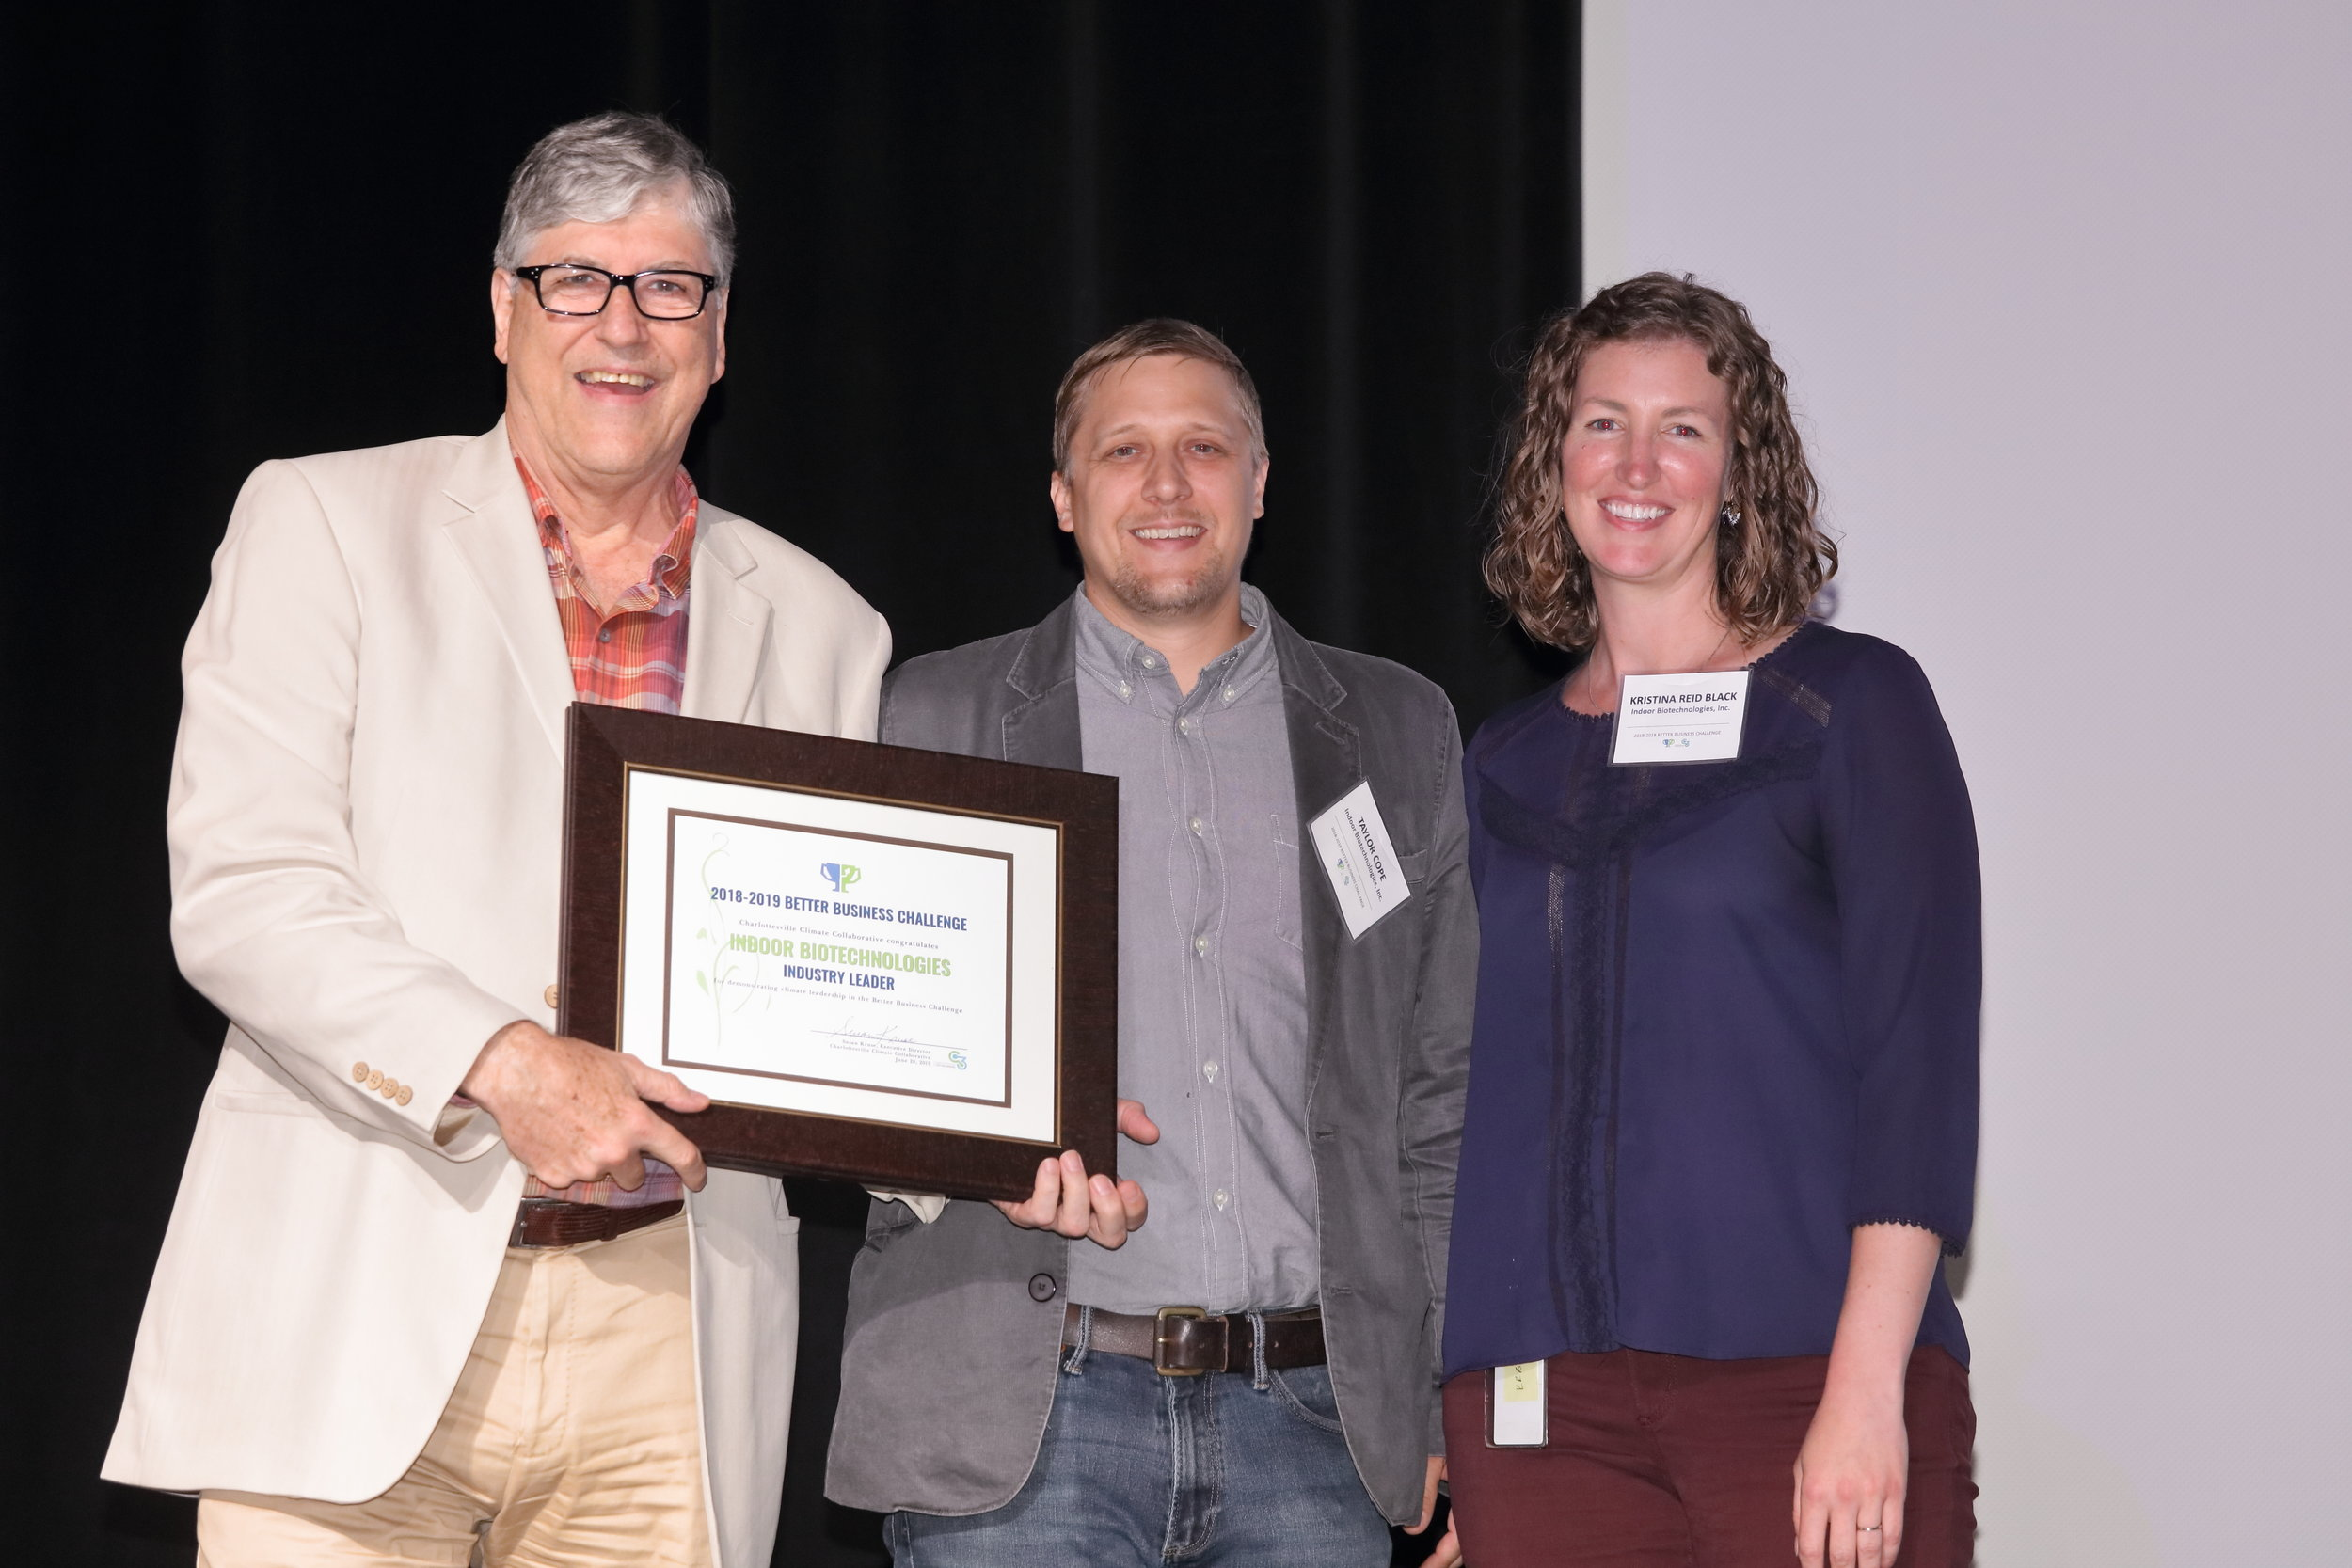 Indoor Biotechnologies at the 2019 Better Business Challenge Awards Night